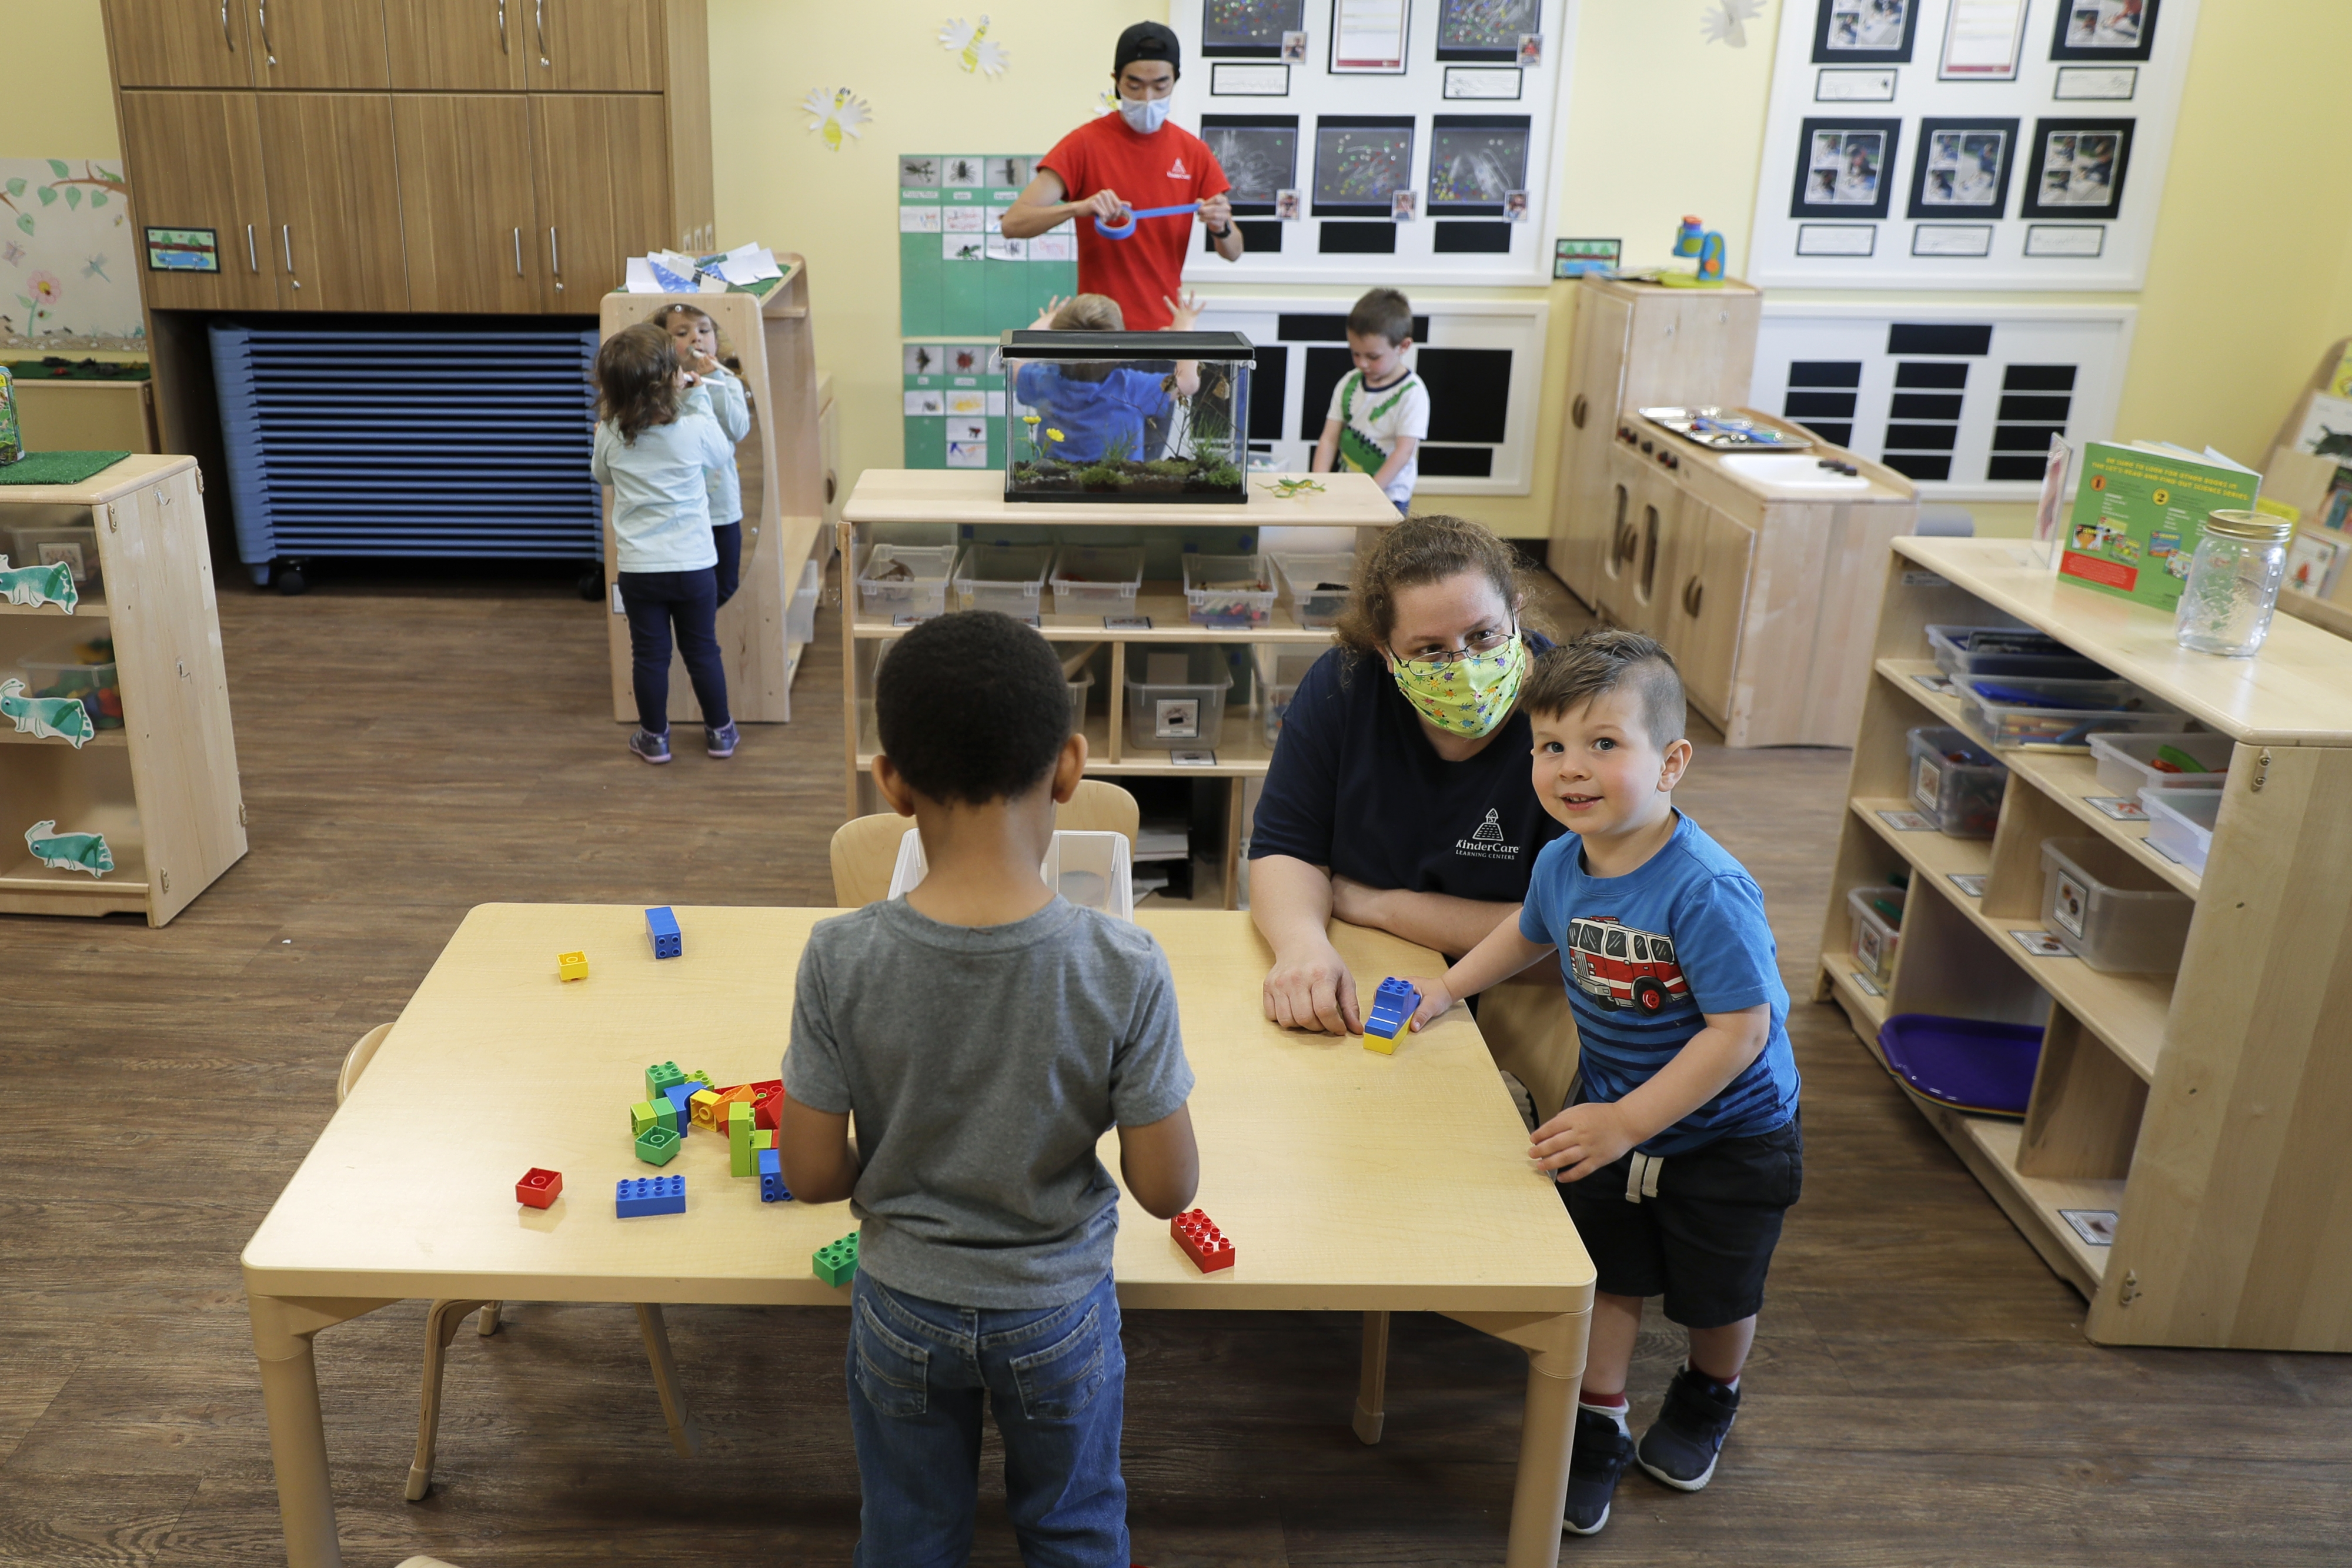 Report: Many Child Care Providers Closed Due To COVID-19. How Many Can Reopen Is Unclear